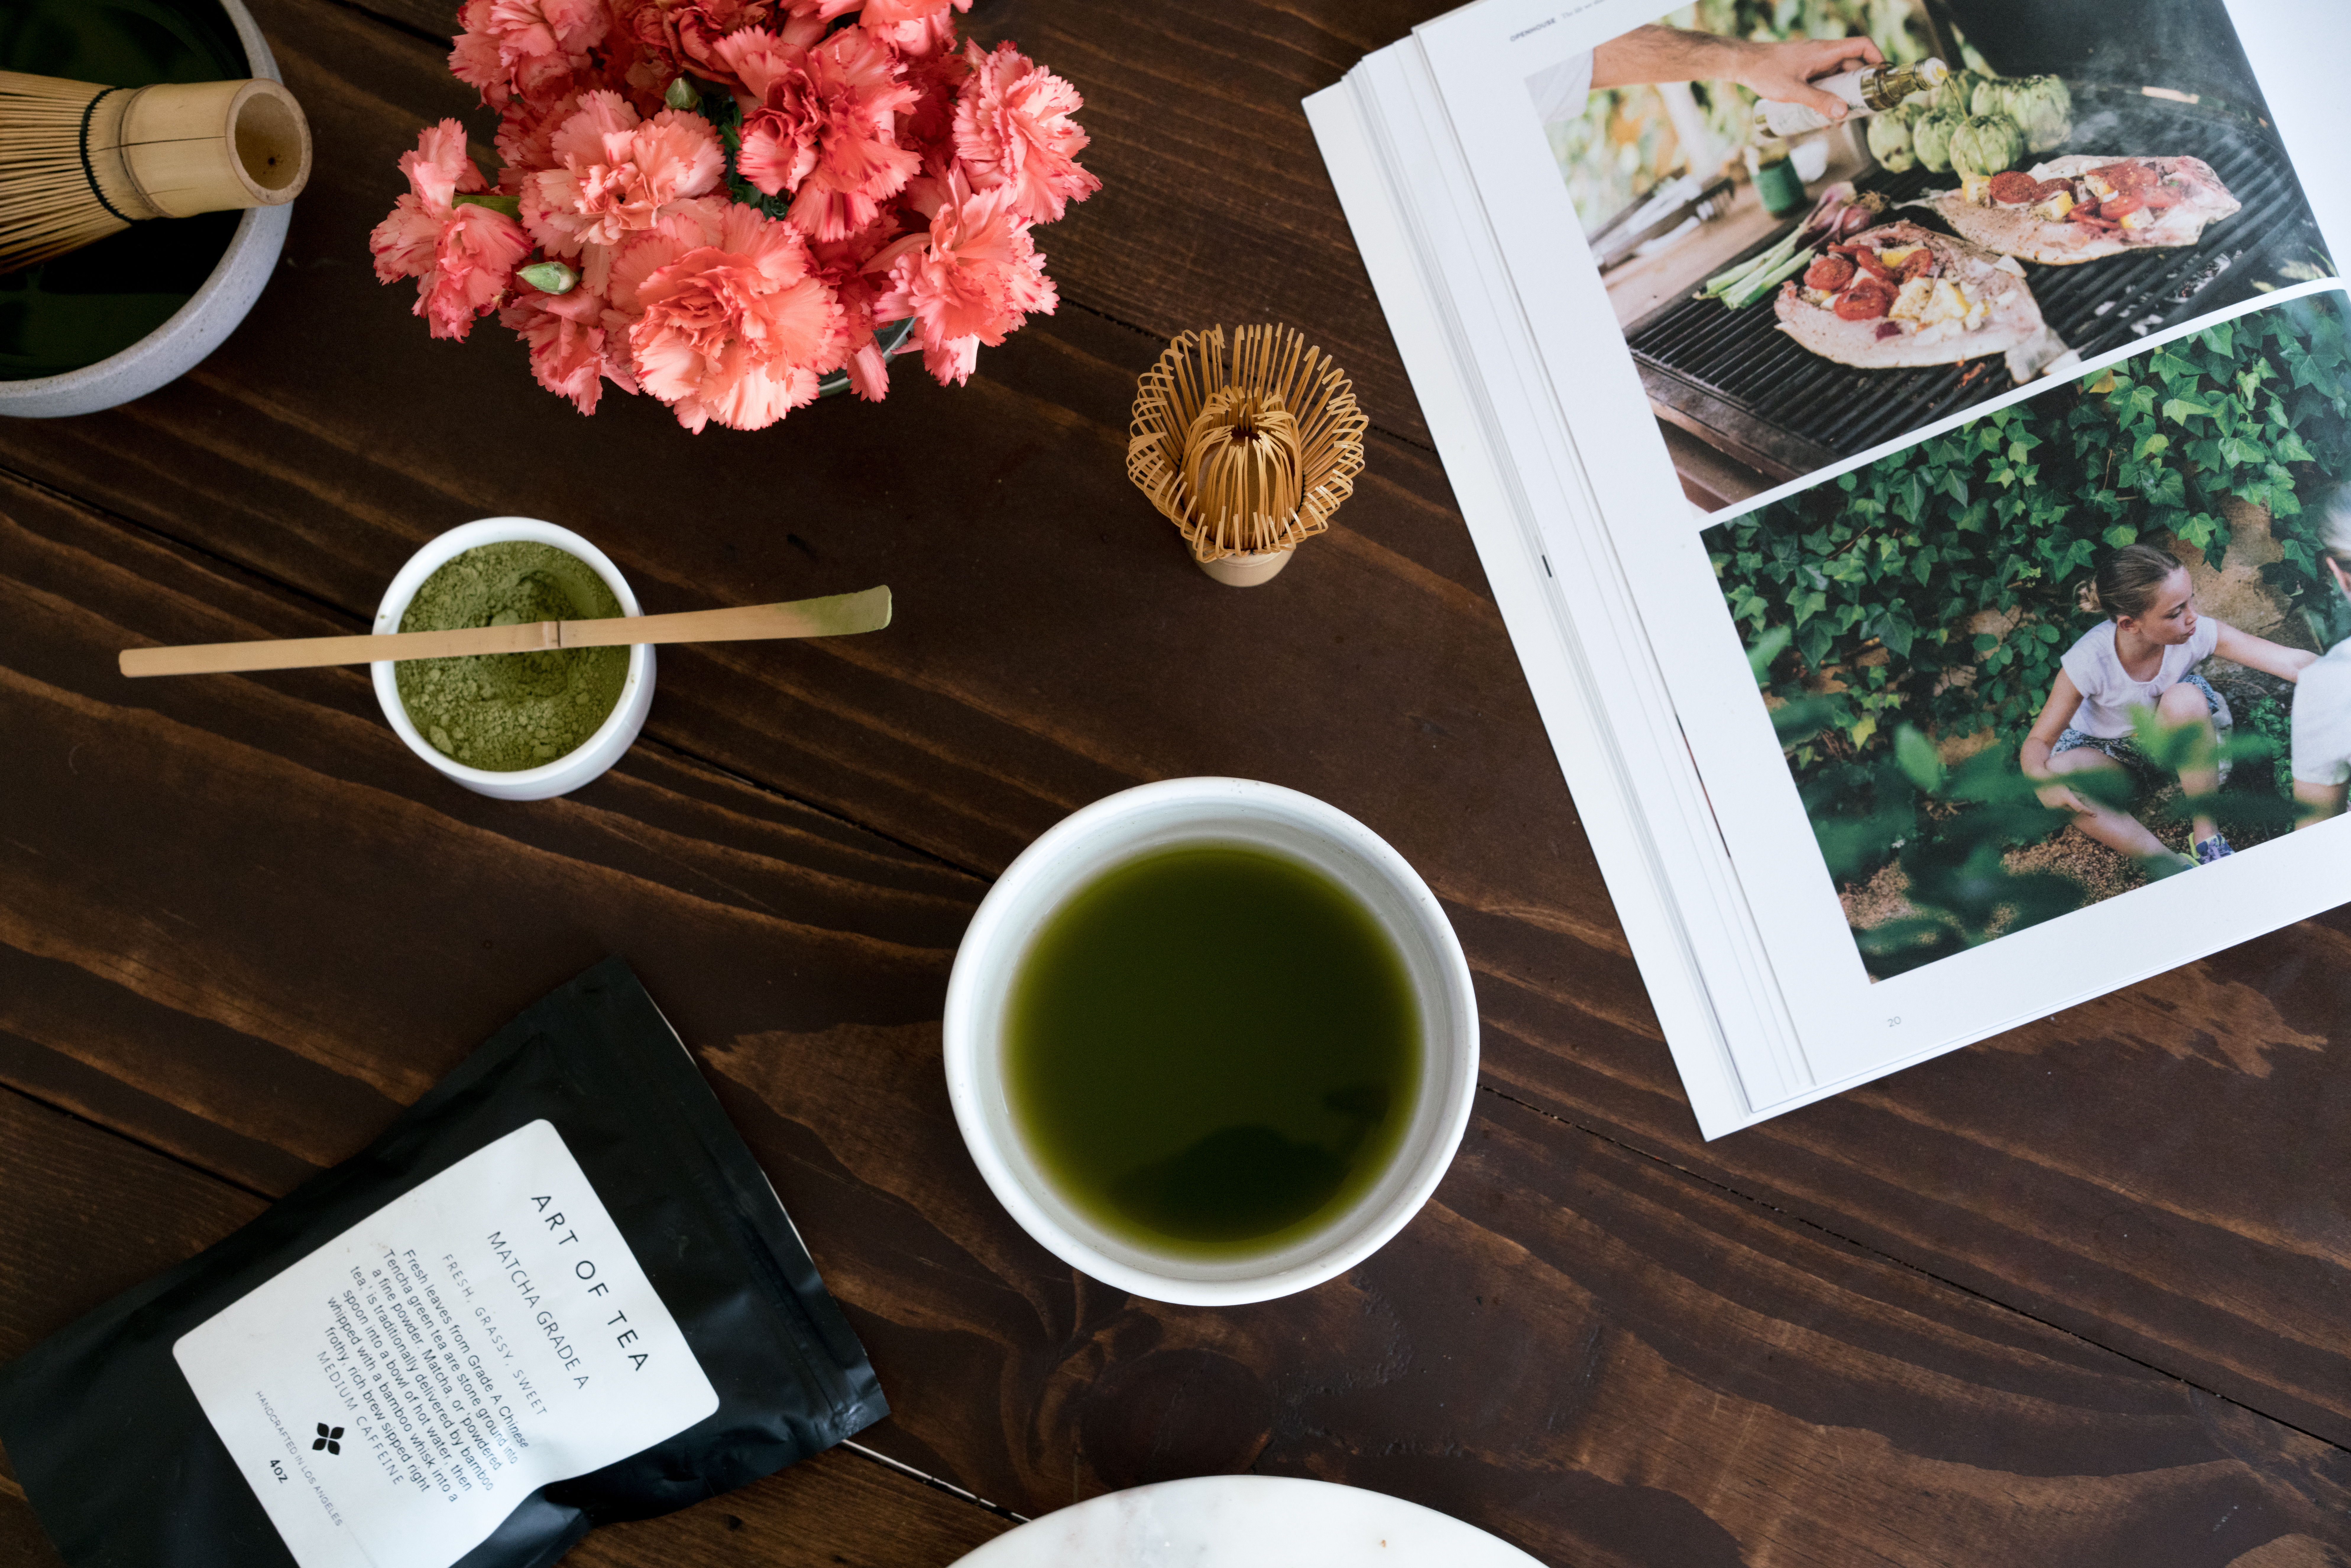 Art Of Tea Matcha Photos-13.jpg